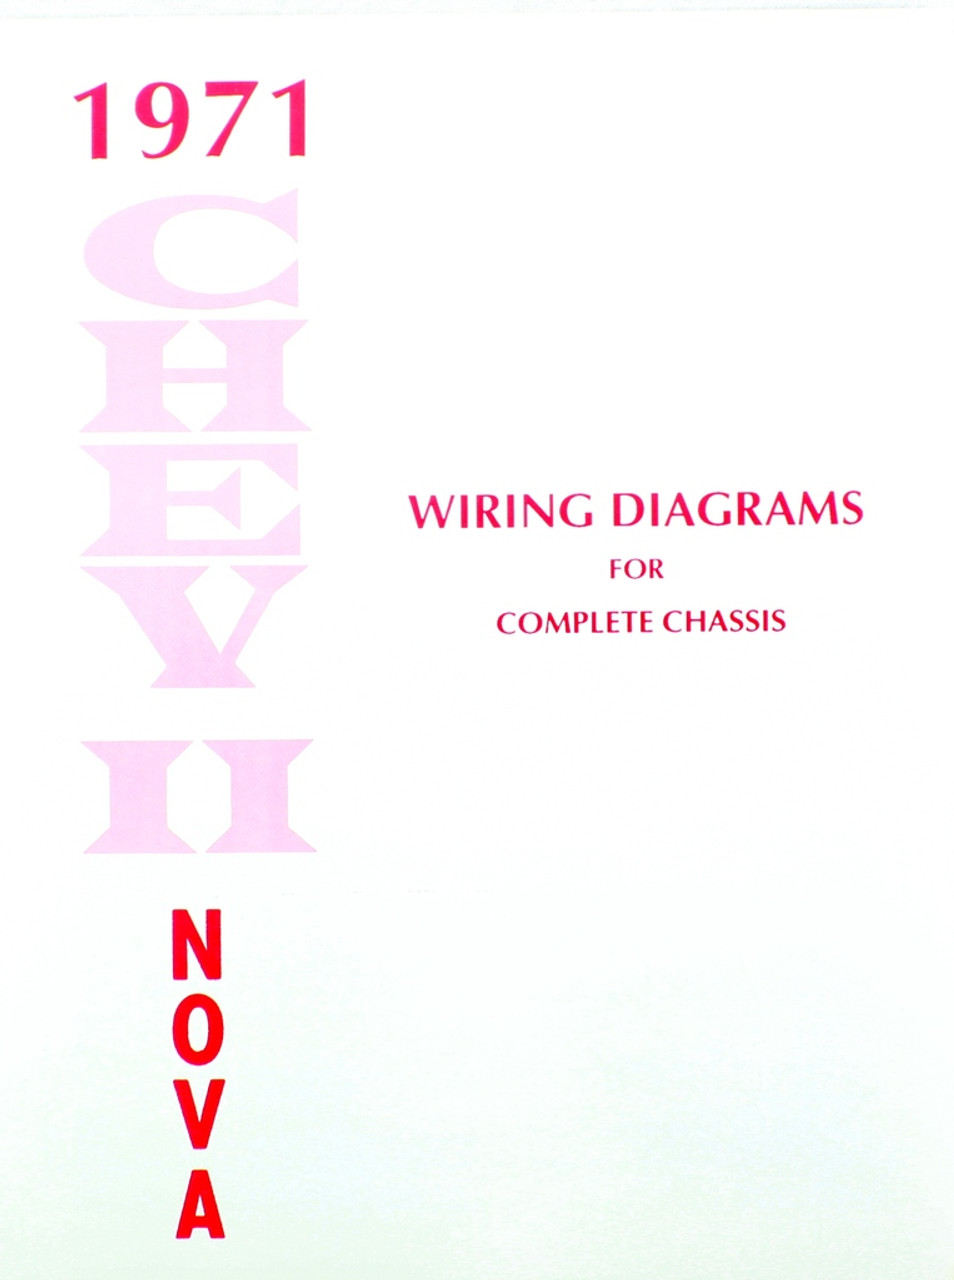 1971 Chevy Ii Wiring Diagram. Ford Mustang Wiring Diagram, 1971 ...